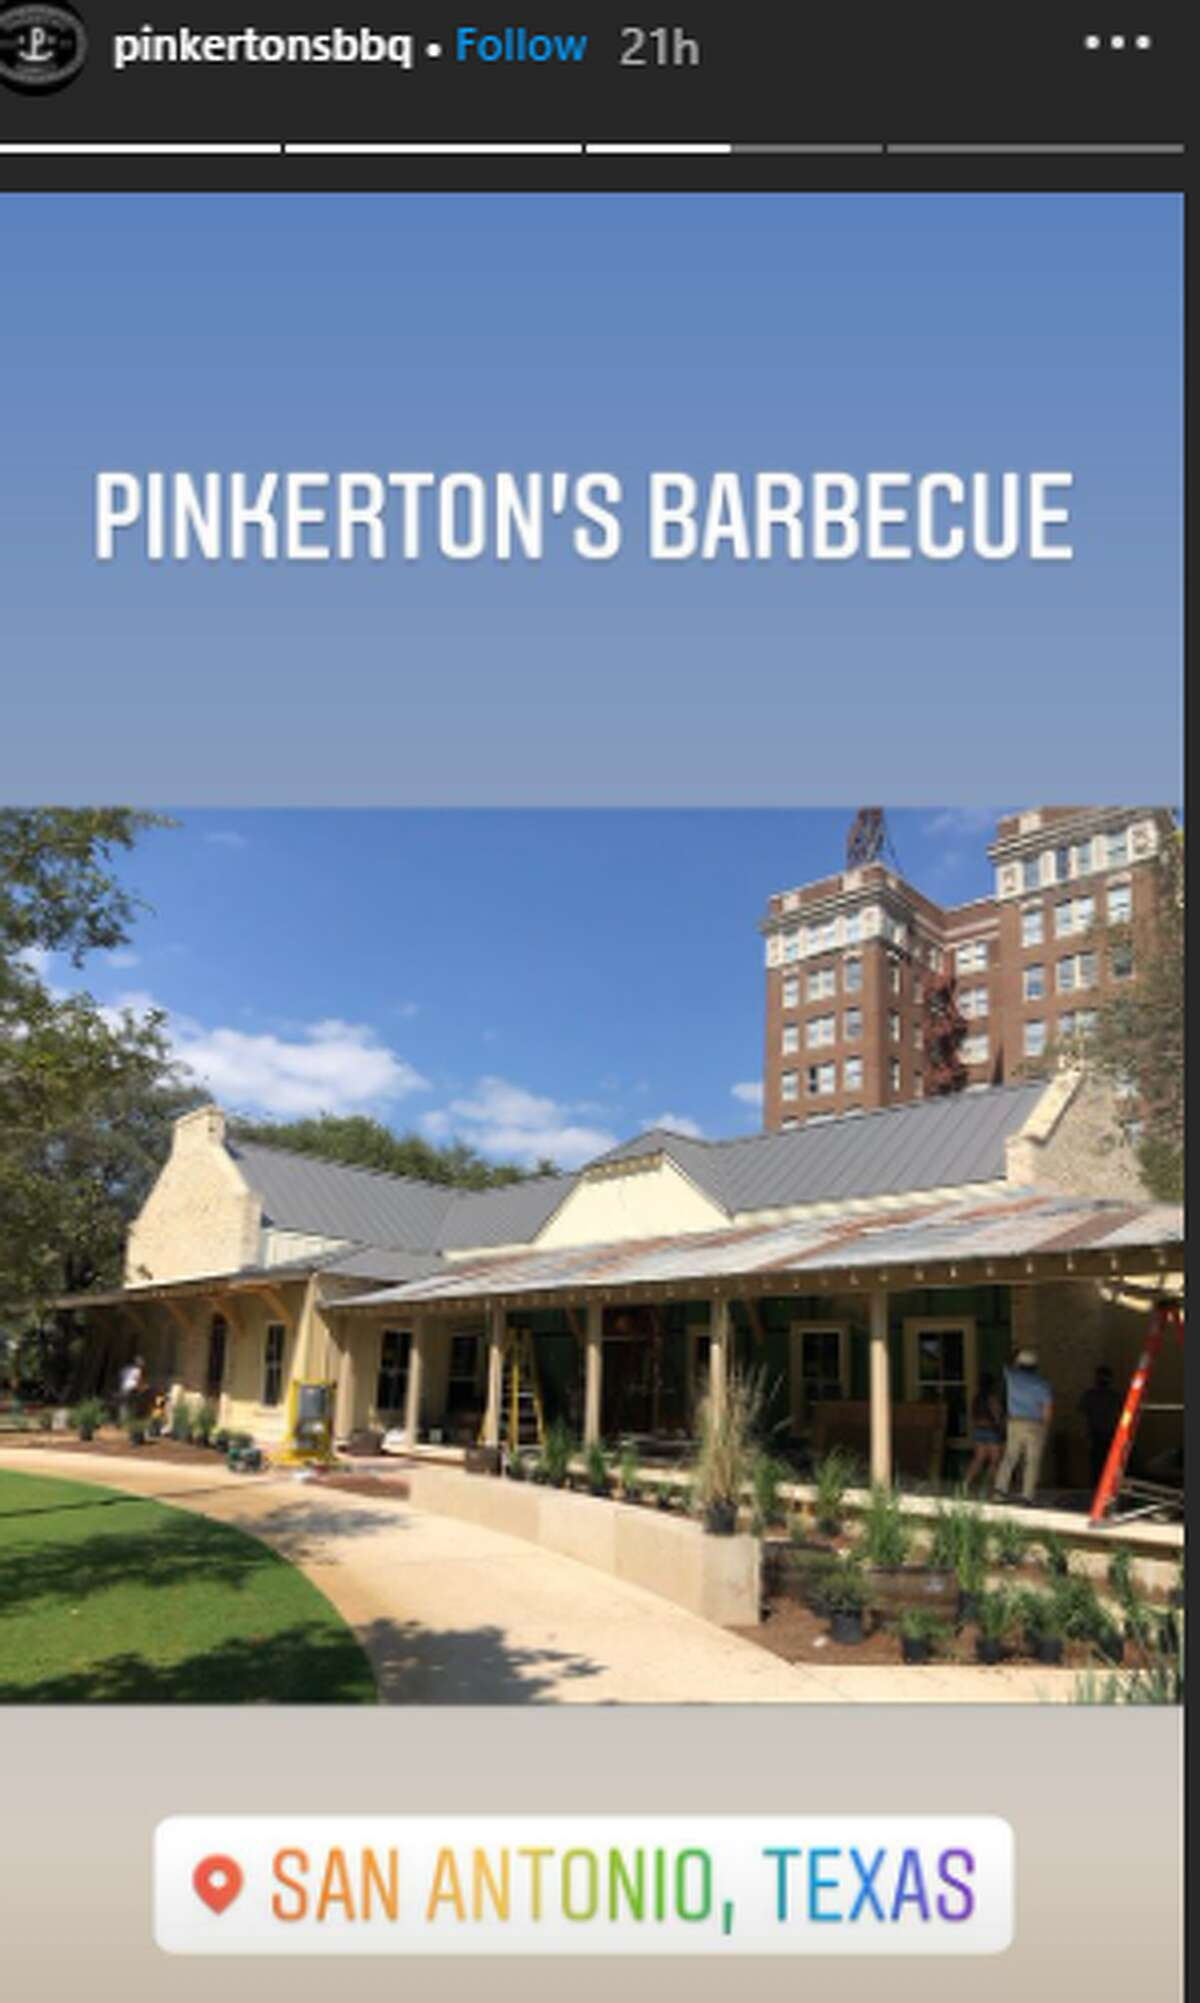 Pinkerton's, owned by Grant Pinkerton, announced the first San Antonio location in January 2019. On Monday, the restaurant shared an update with two photos, showing the bar and exterior of the spot at 107 W. Houston St., near Frost Tower.